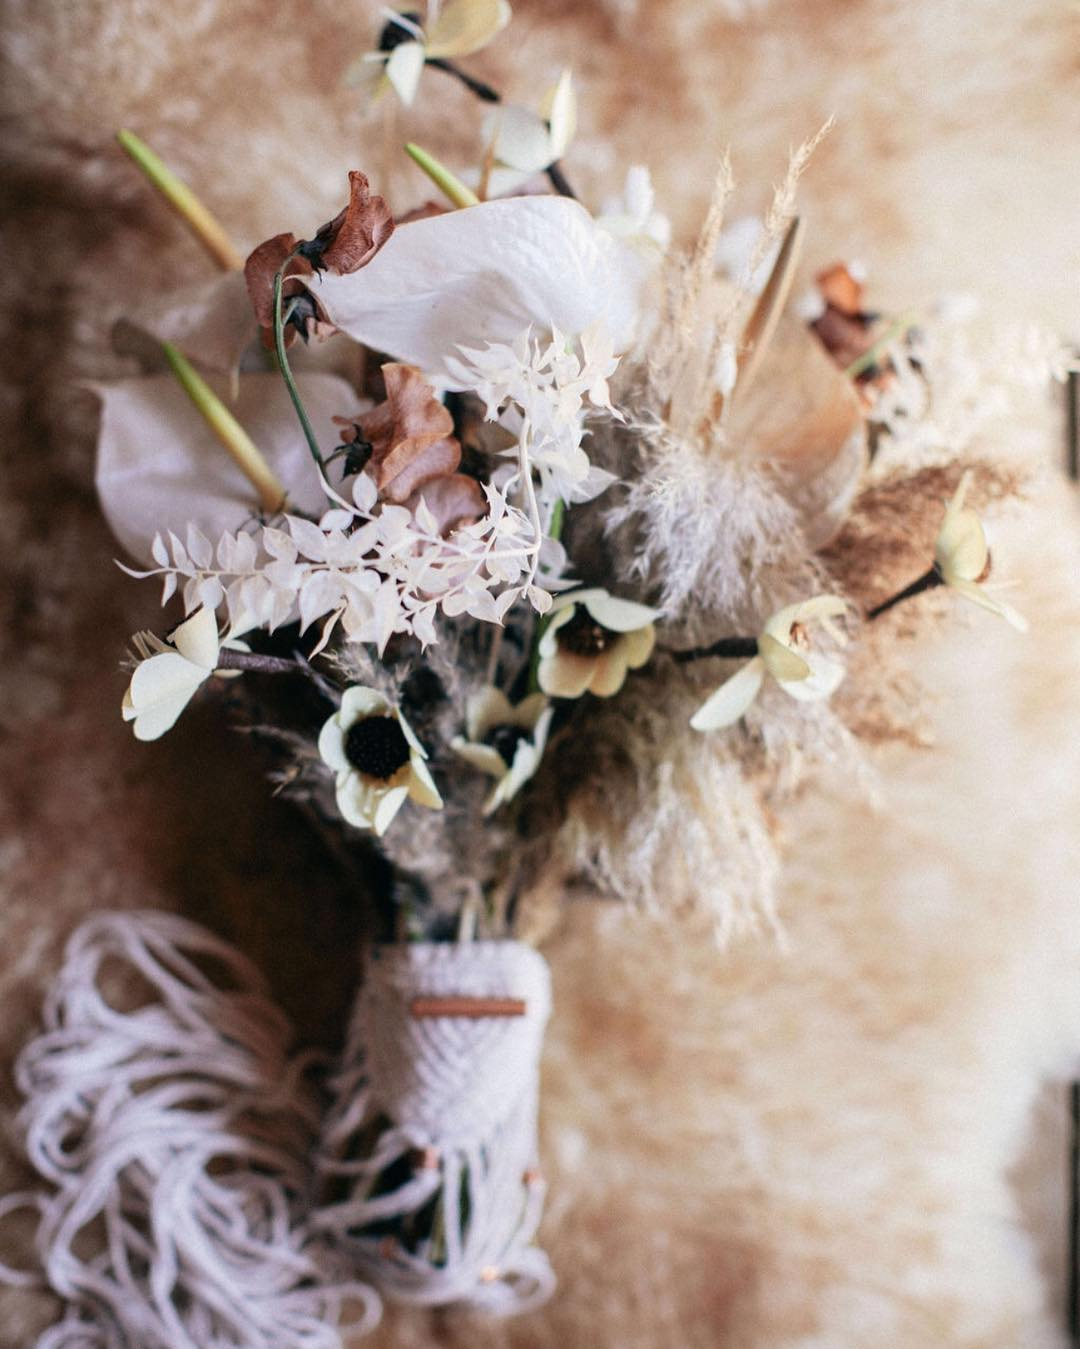 Love combining dried & fresh florals together & for this bouquet I added some paper flowers also & oh yeah and sweet custom macrame wraps by @rissa.bee?? . . Styling/Photography | @kate_preftakes  Styling/Florals | @lotusfloraldesigns  Styling/Cake/Food| @autumnnomad  Macrame | @rissa.bee  Jewelry | @heartofgolddesigns  Dress | @pamela_moore_bridals  Makeup | @katherine_macdonald_beauty  Hair | @jeffreypiroso  Invitations | @amrcalligraphy  Model | @thefreckledmodel . . #collaborate #styledshoot #weddinginspo #weddingdesign #bohostyle #freespirit #moderngypsy #macrame #create #love #makeart #lotusfloraldesigns #oneofakind